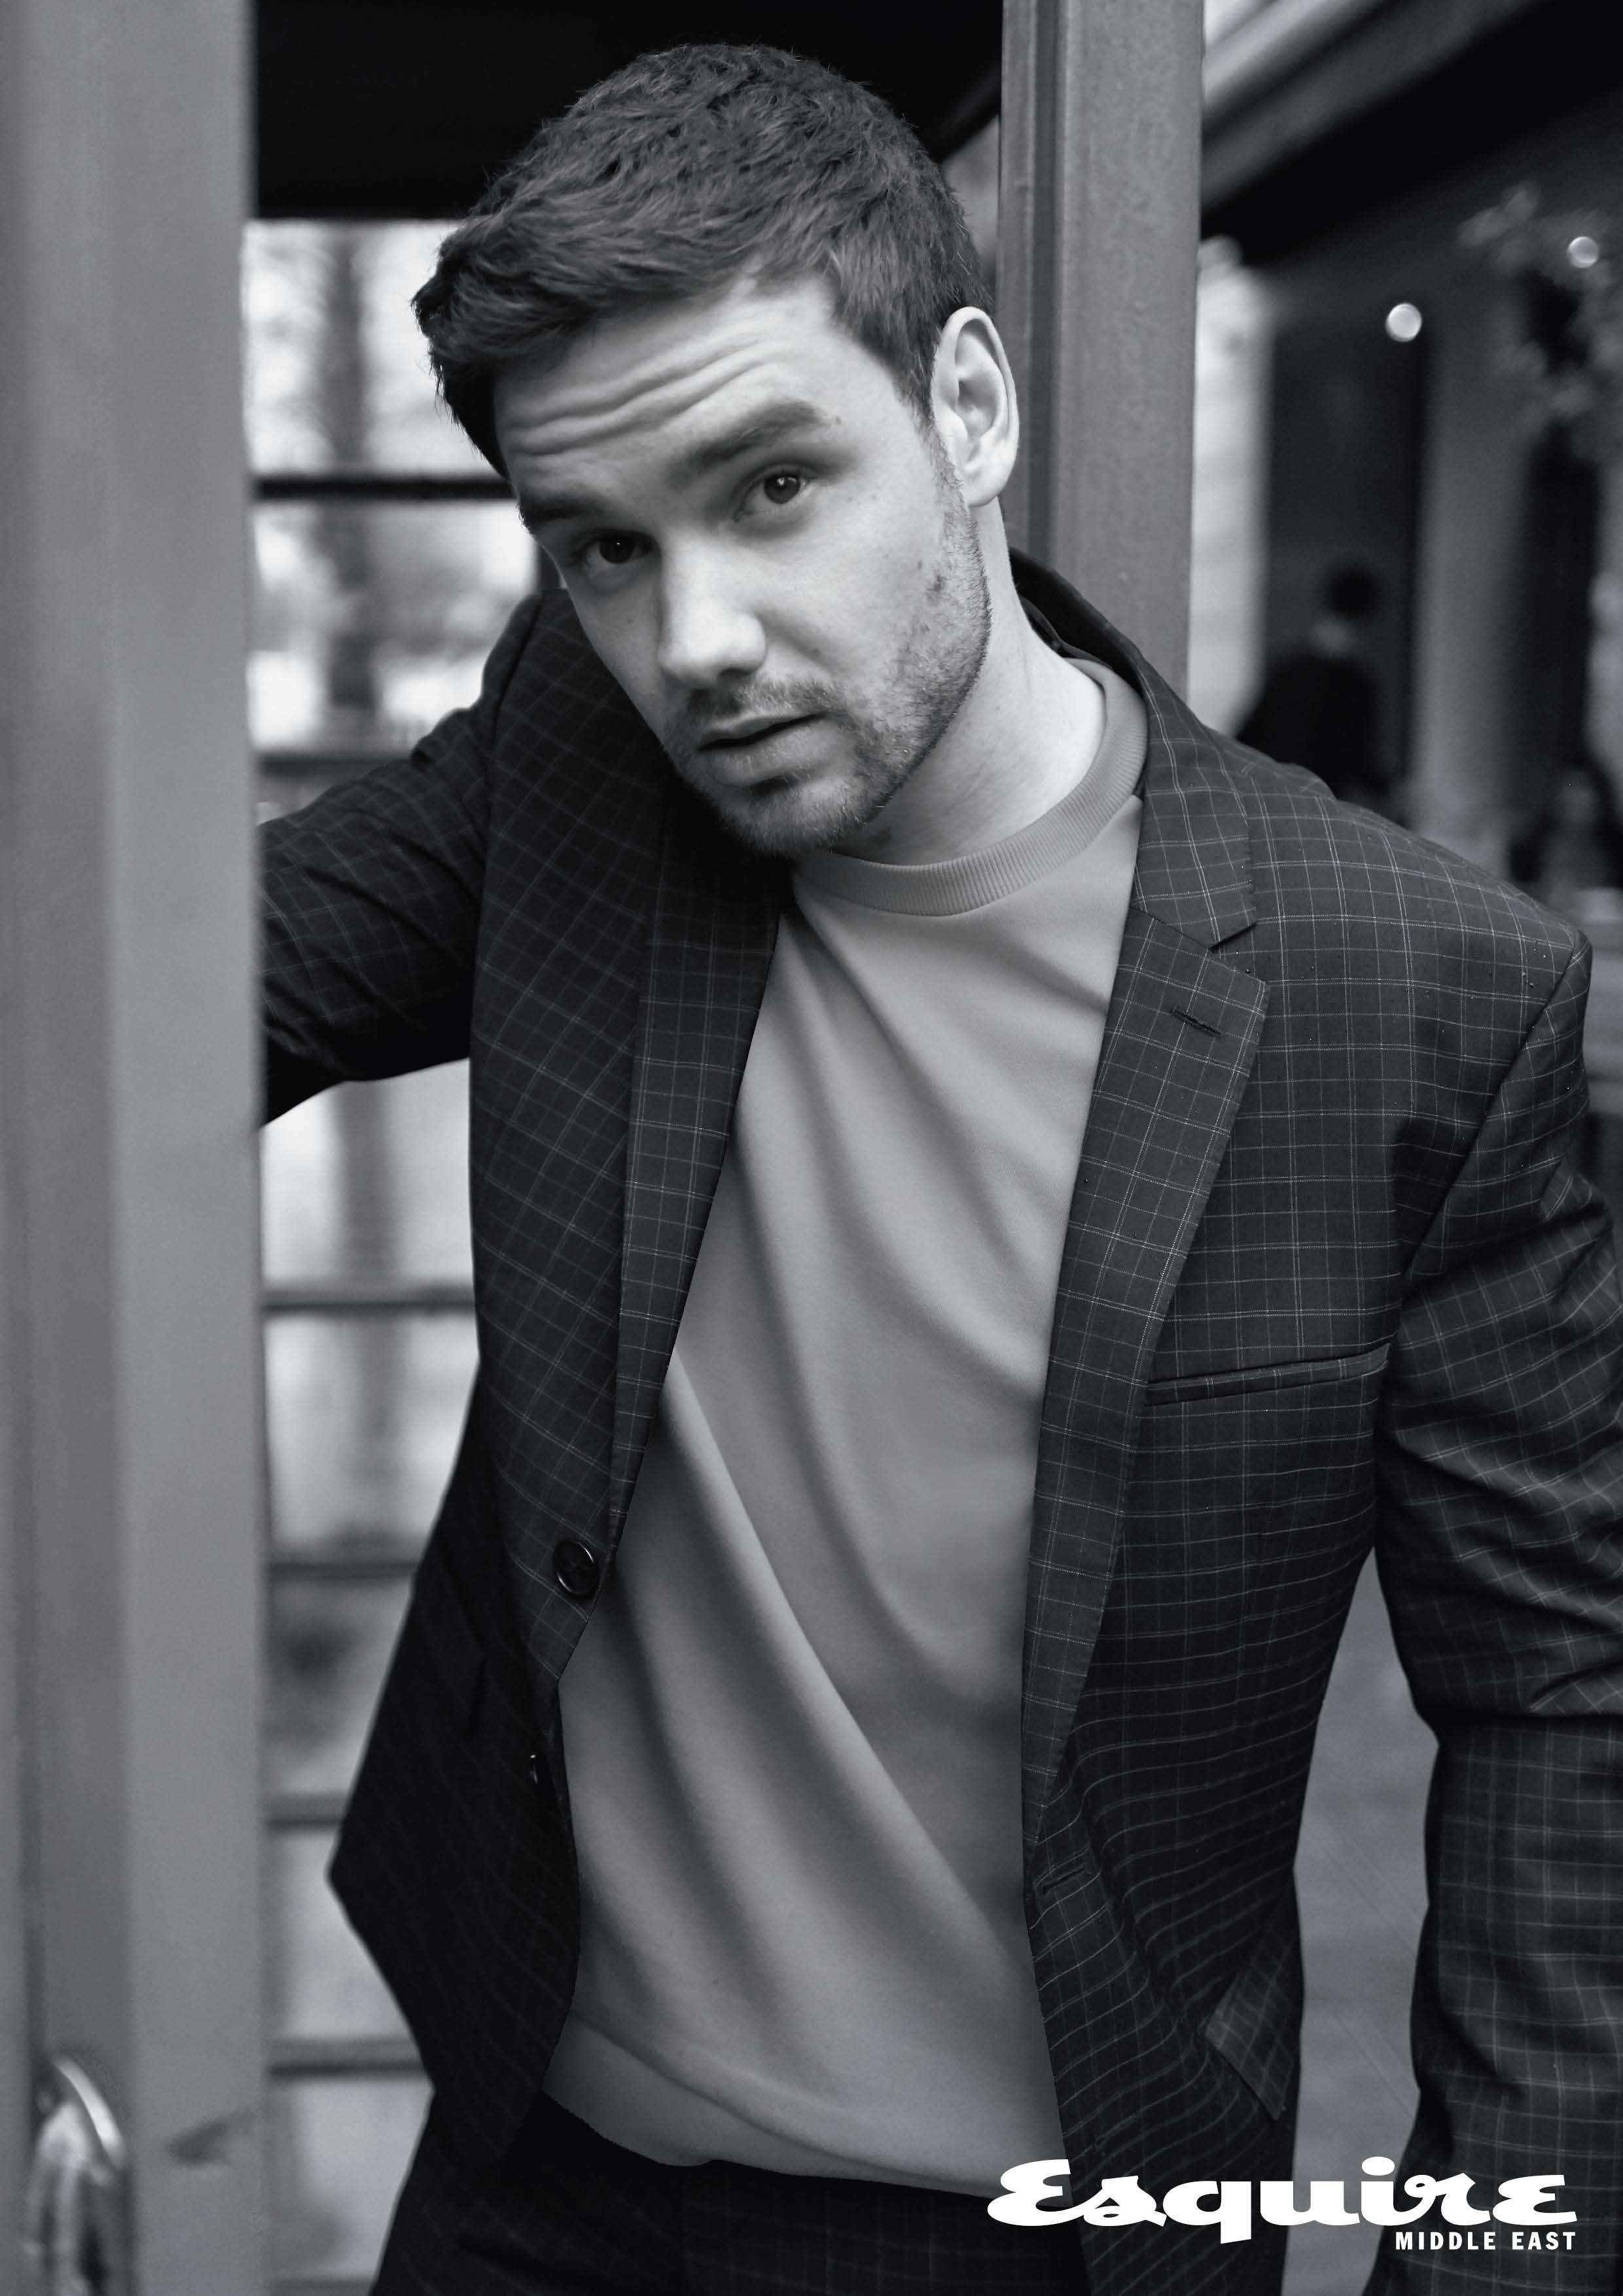 Liam Payne Esquire Middle East Photo Shoot